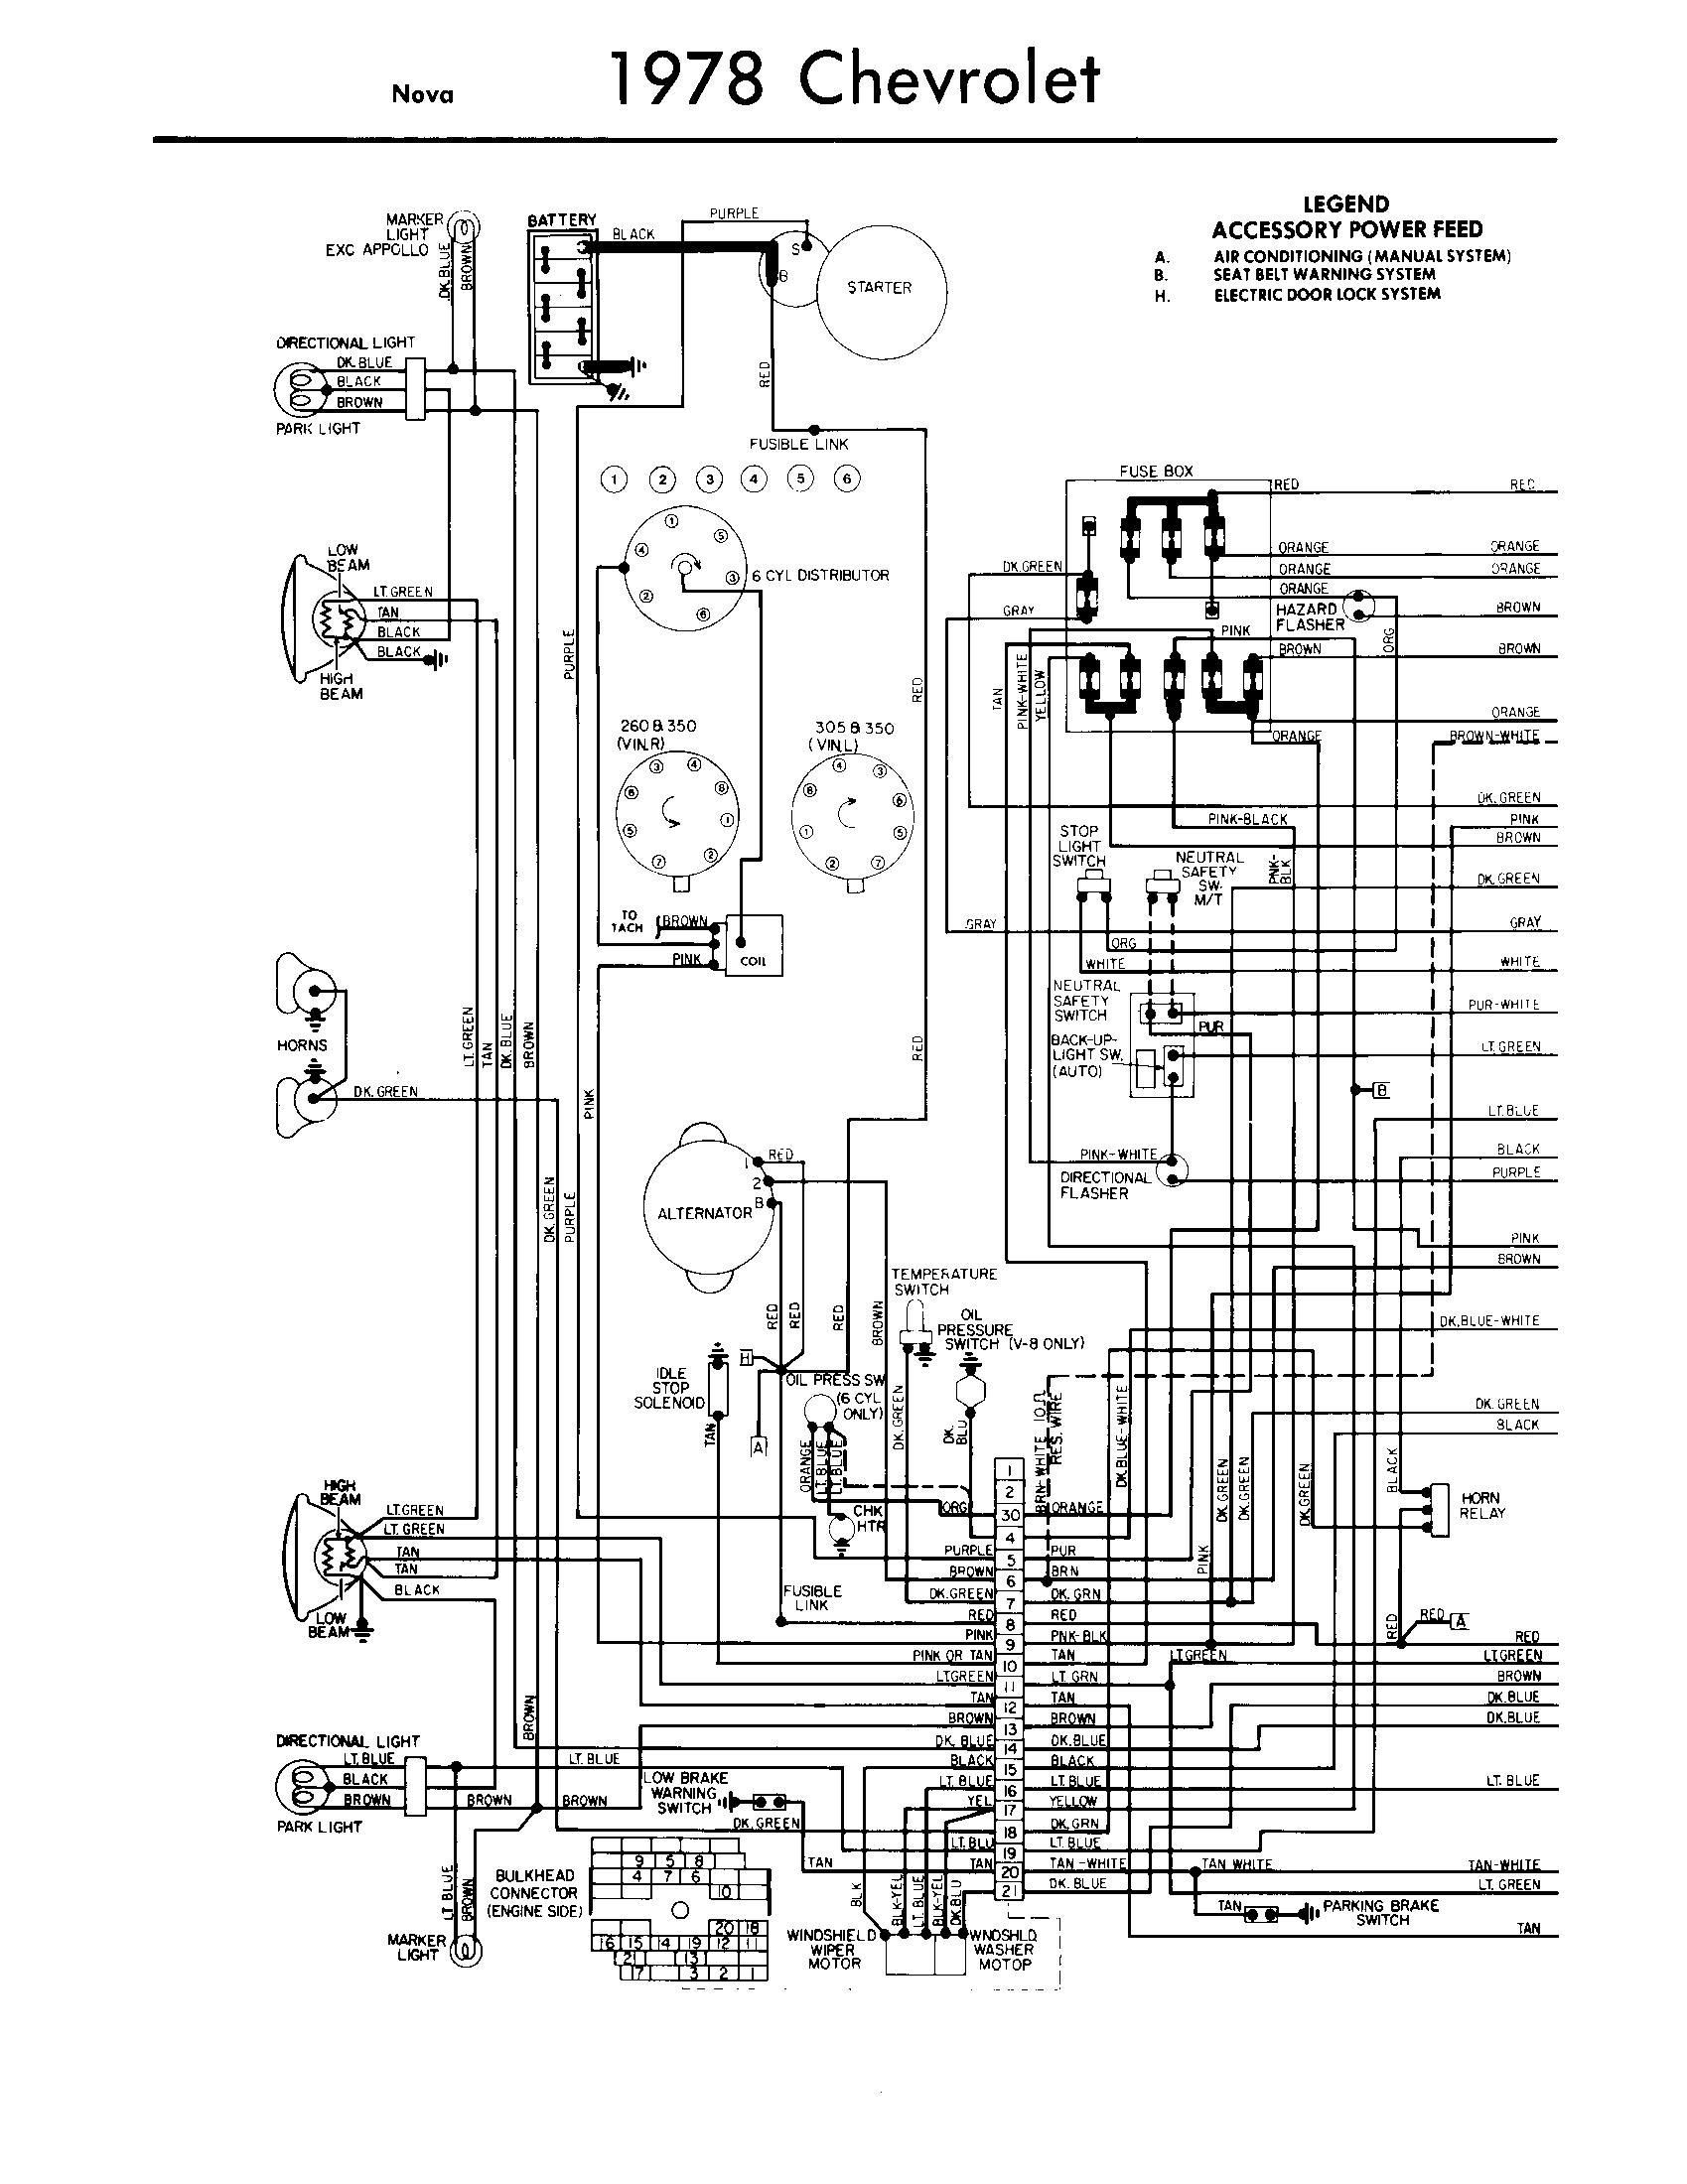 Pin on Electrical wiring diagramPinterest